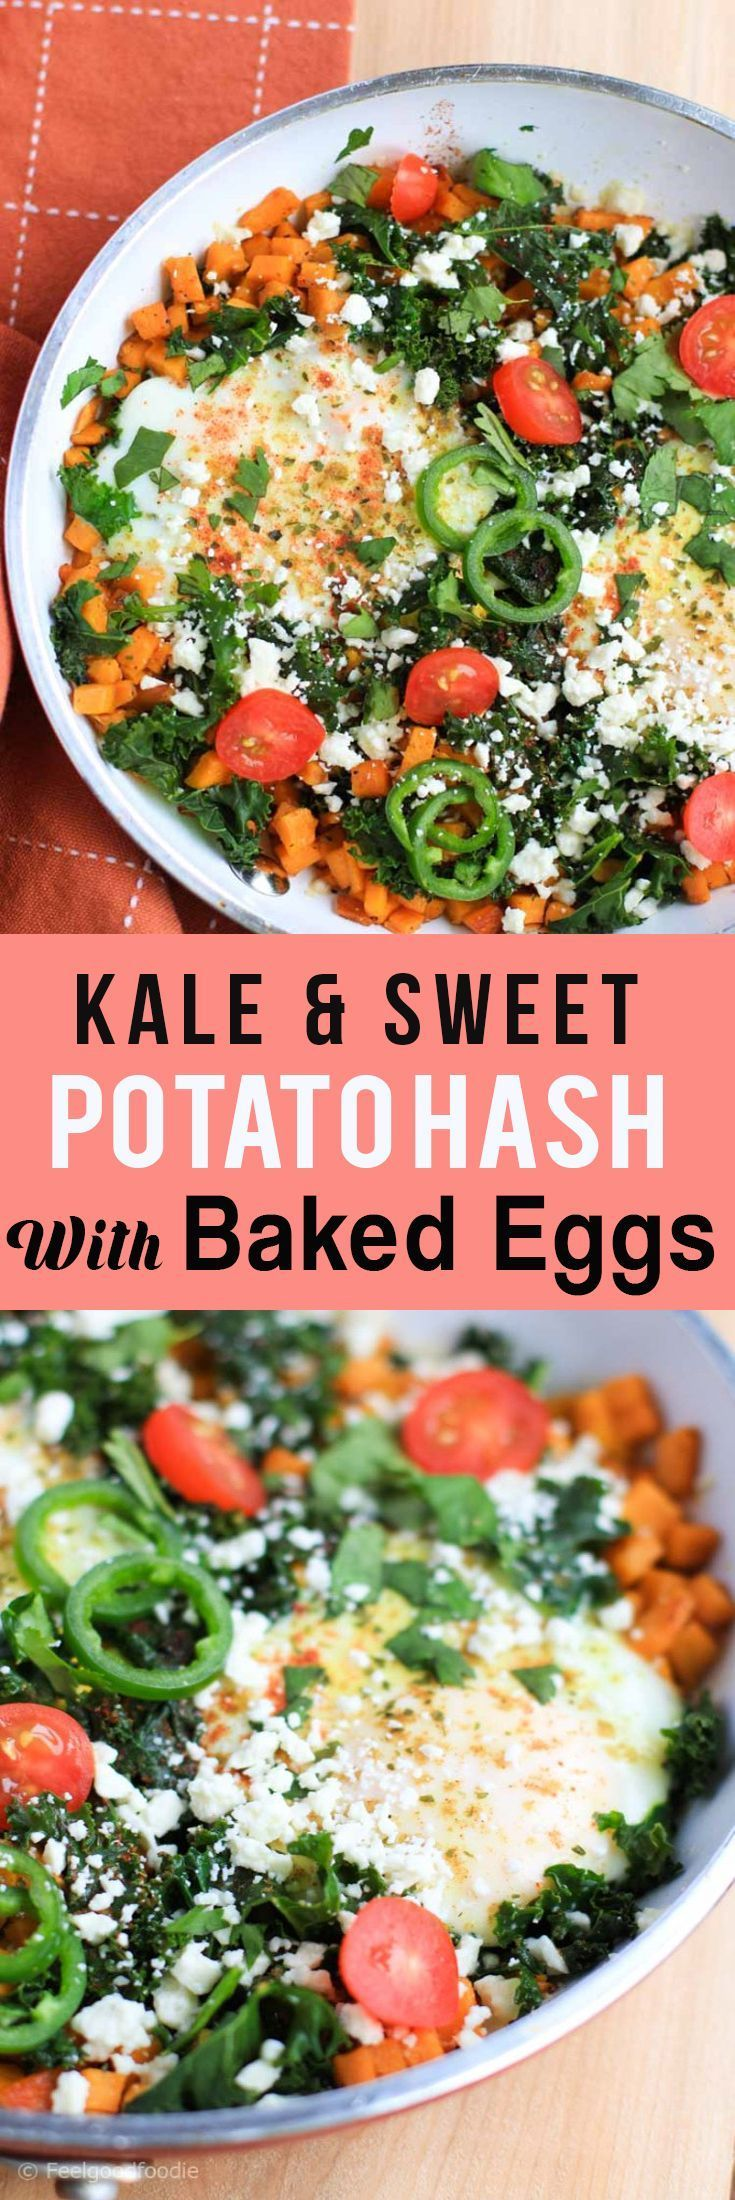 Kale & Sweet Potato Hash With Baked Eggs | You know that one meal you can eat for breakfast, lunch or dinner or ANYTIME in between? Yeahhh..this is it!